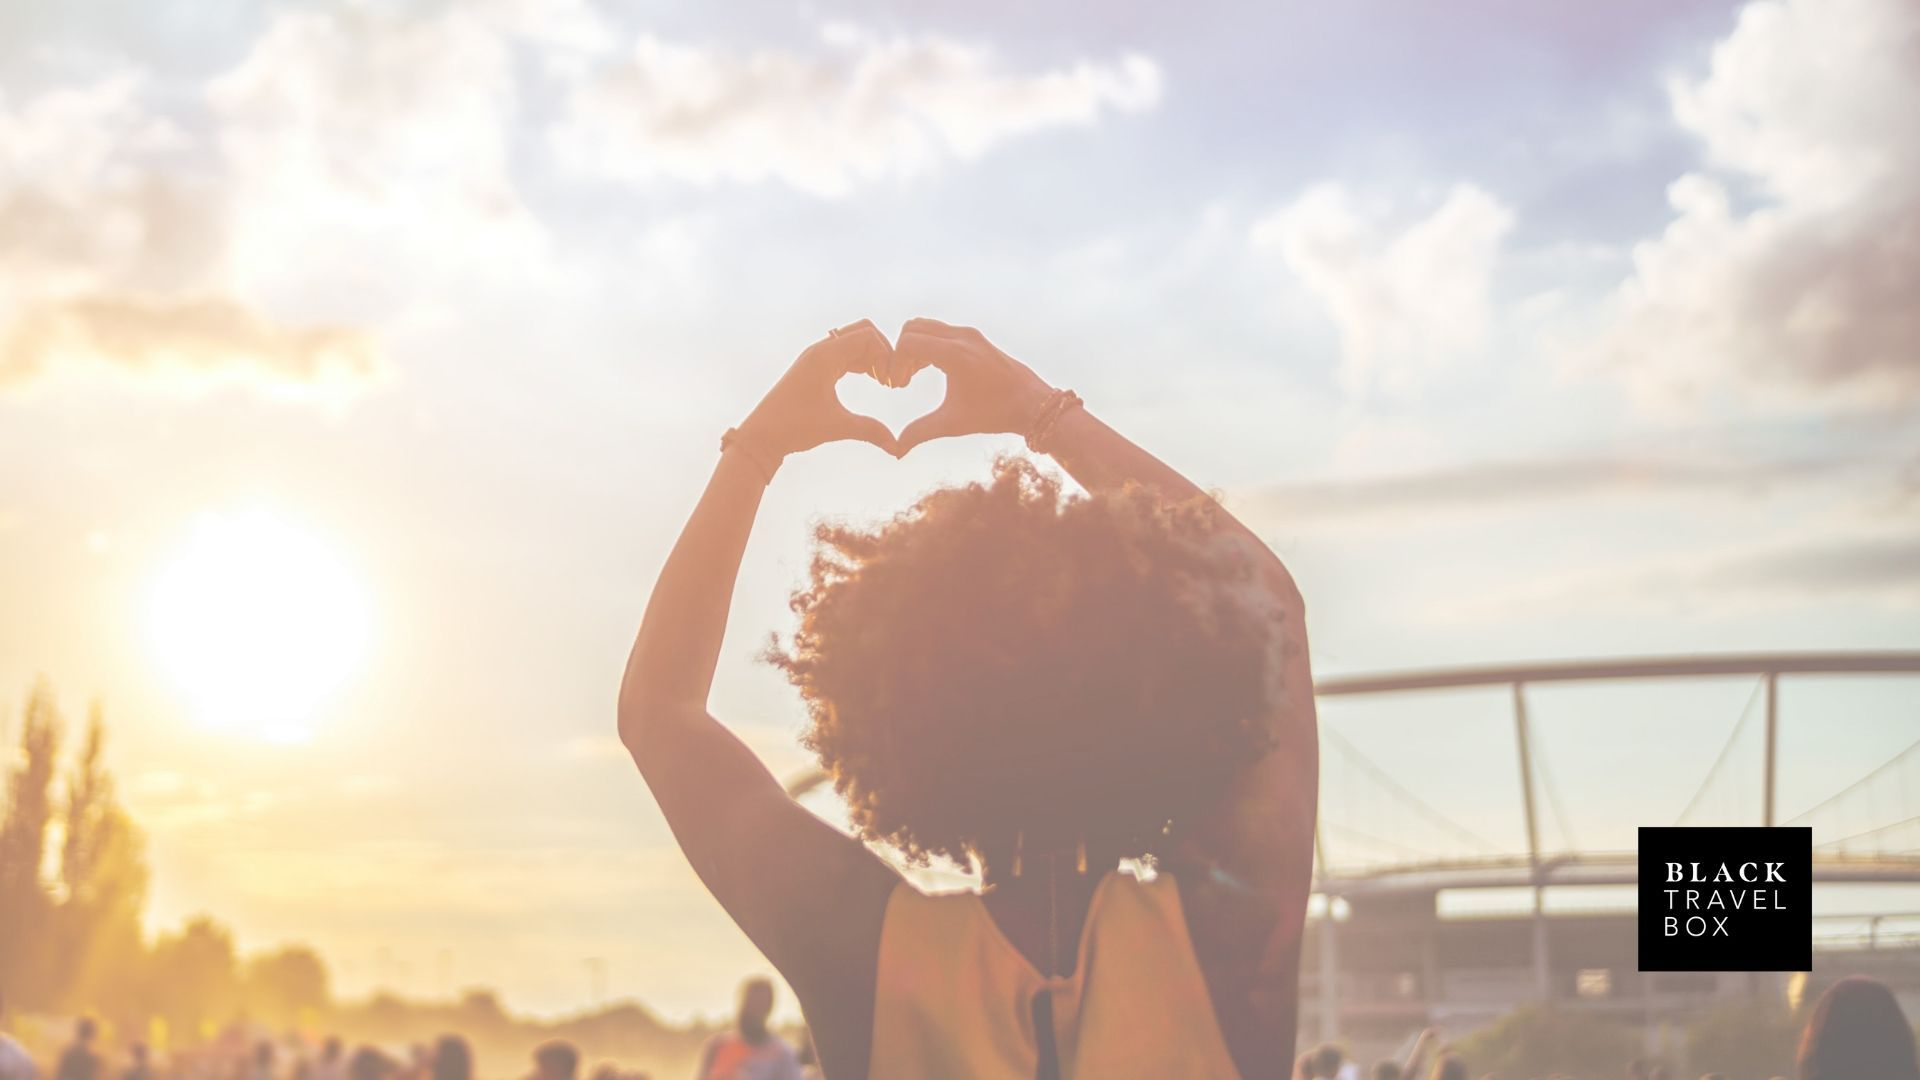 5 Summer Festivals to Show Off Your Black Girl Magic